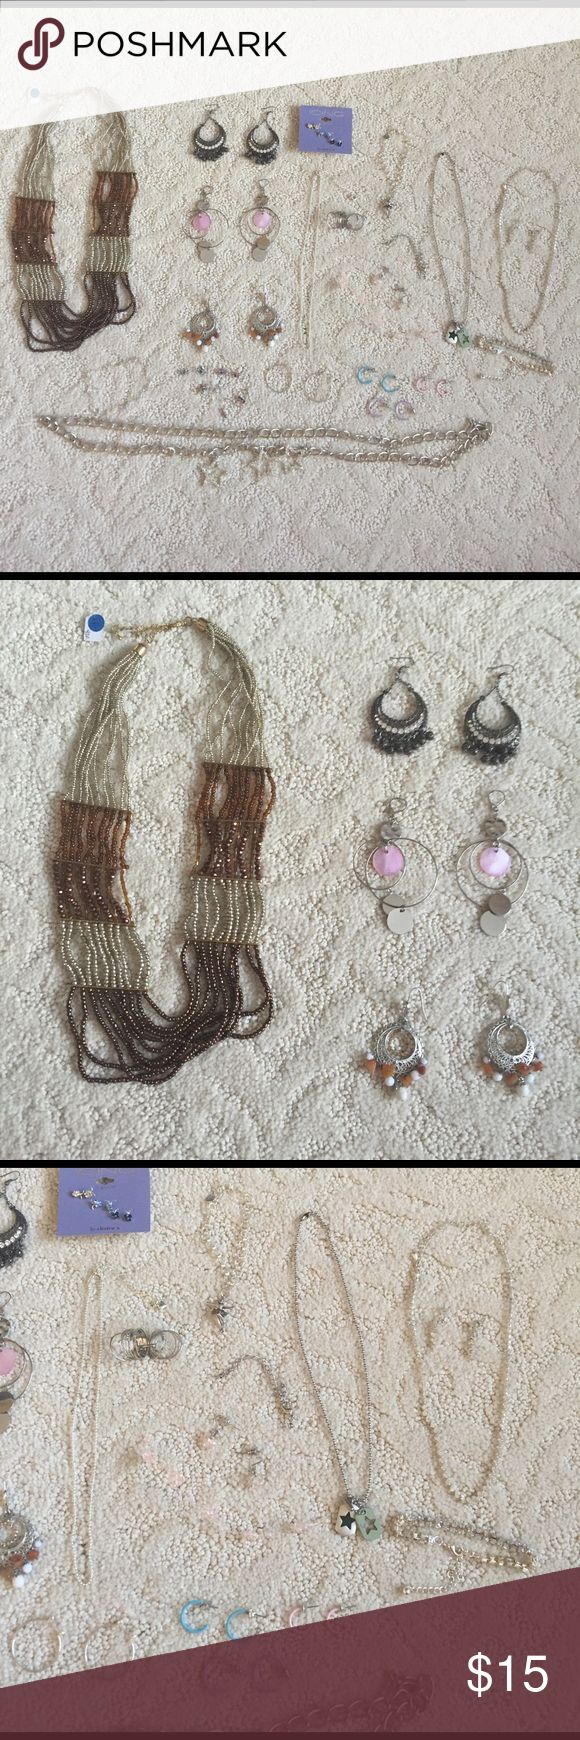 Huge Jewelry Bundle Fantastic condition. Most has never been worn and some have been worn maybe once. Bundle includes 16 sets of earrings, 3 bracelets, 5 necklaces, 1 chain belt and 1 ring. Items are from Zara, H&M & Claire's Zara Jewelry